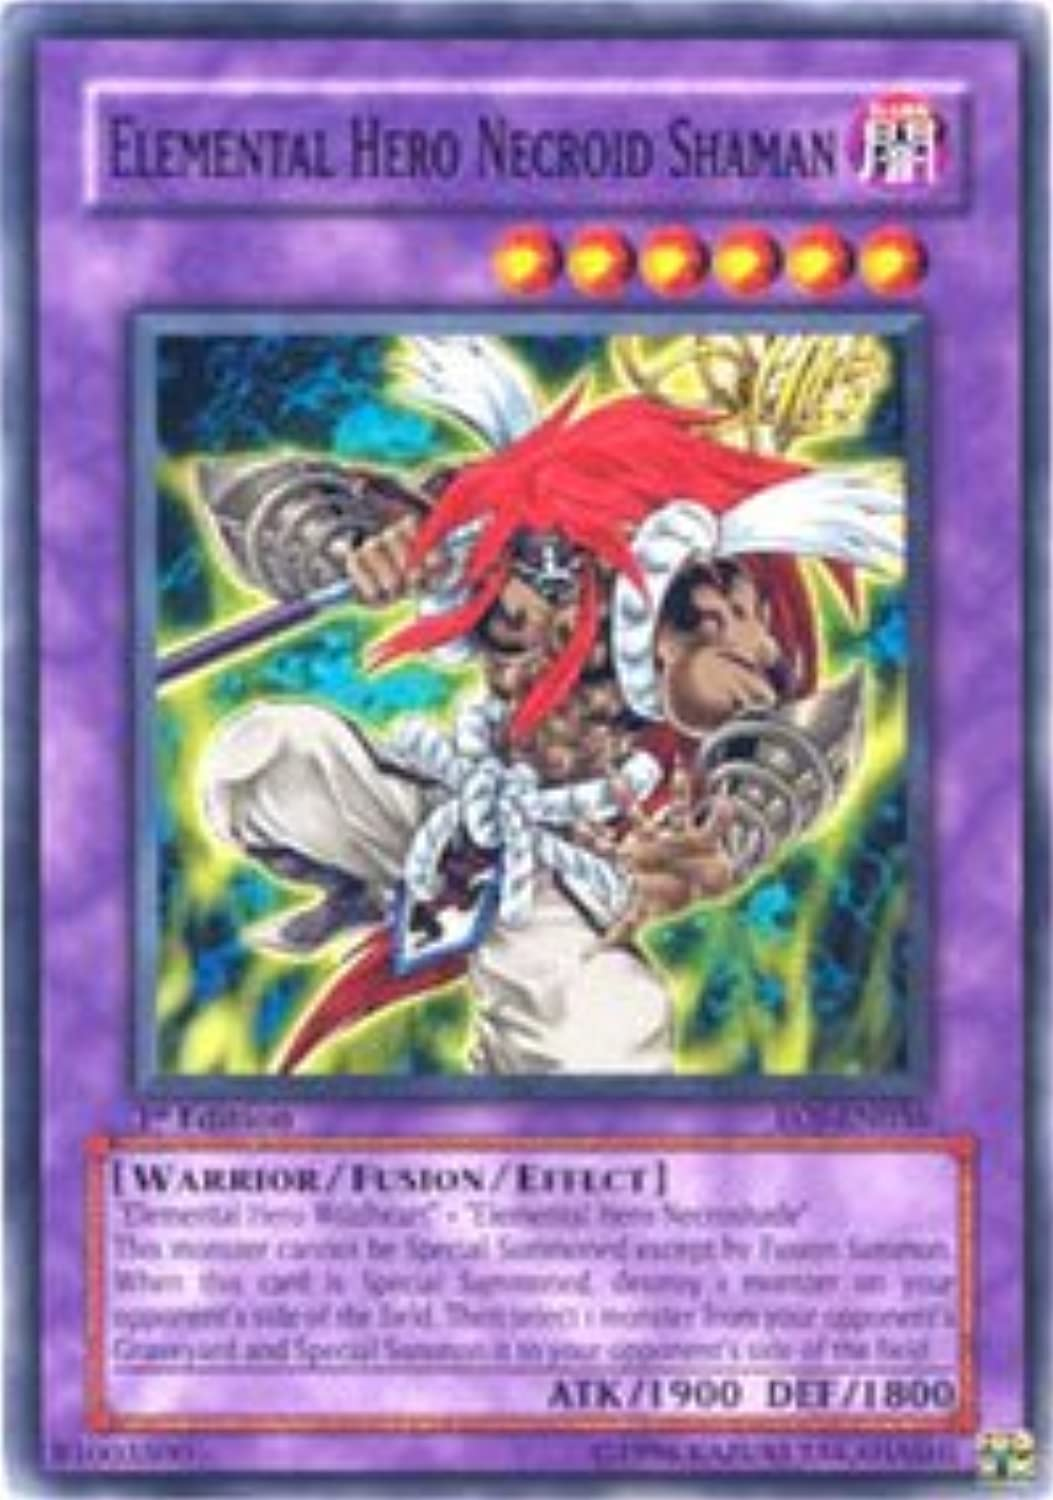 YuGiOh   Elemental Hero Necroid Shaman (EOJEN036)  Enemy of Justice  1st Edition  Common